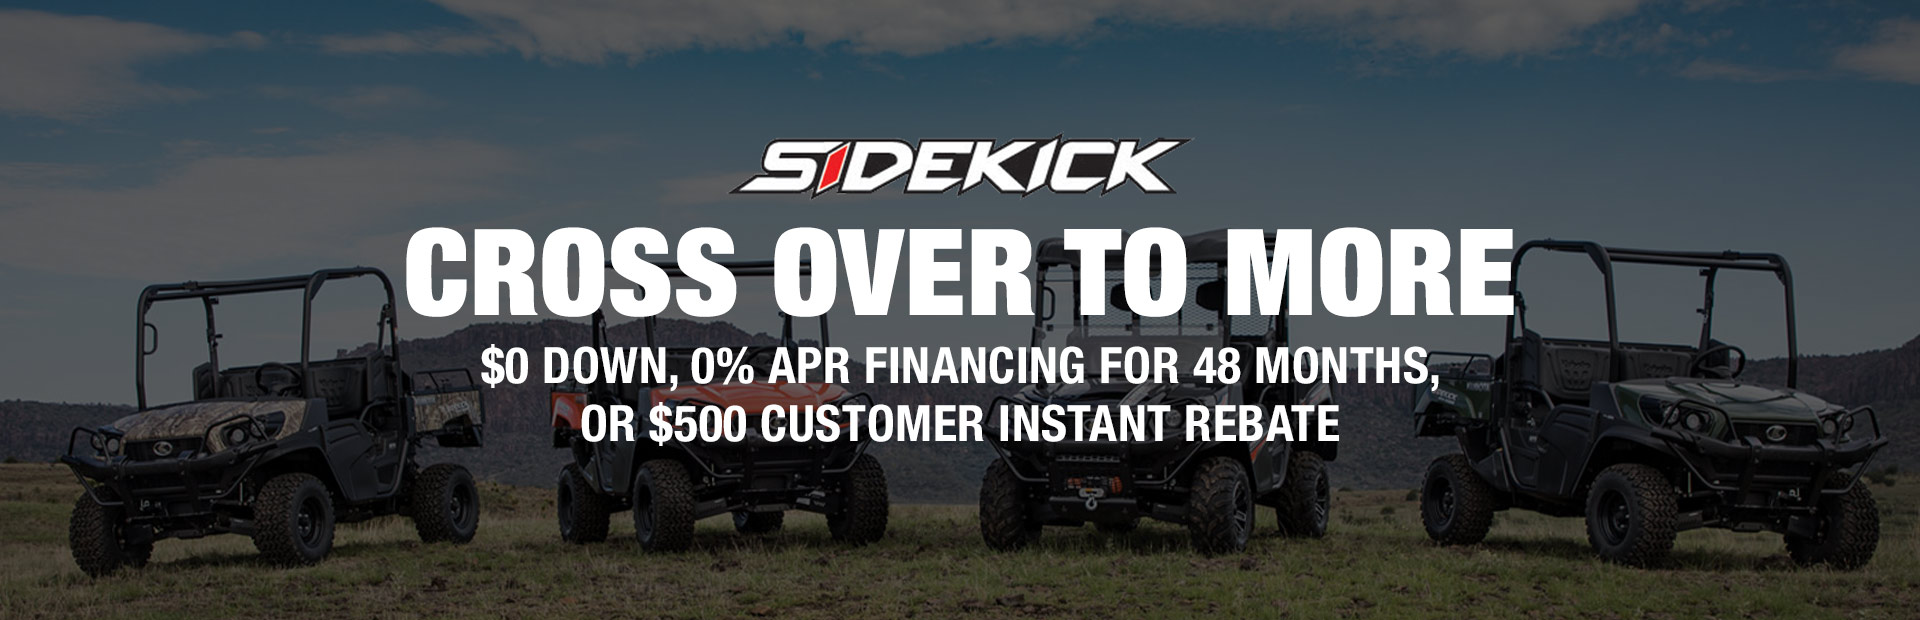 Kubota Sidekick: Cross over to more.